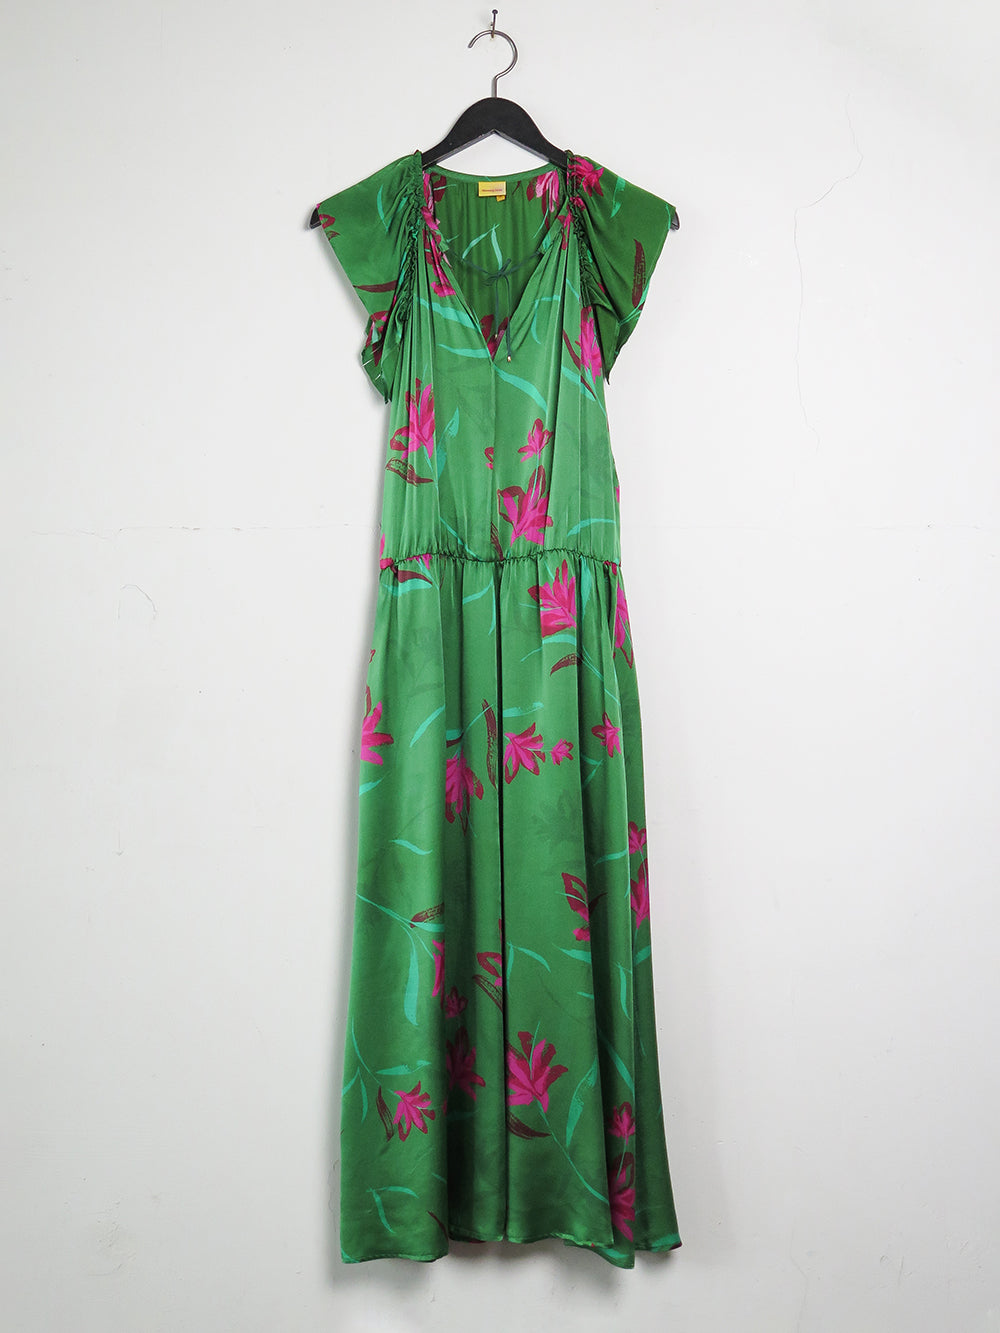 monoplaza candice dress in green